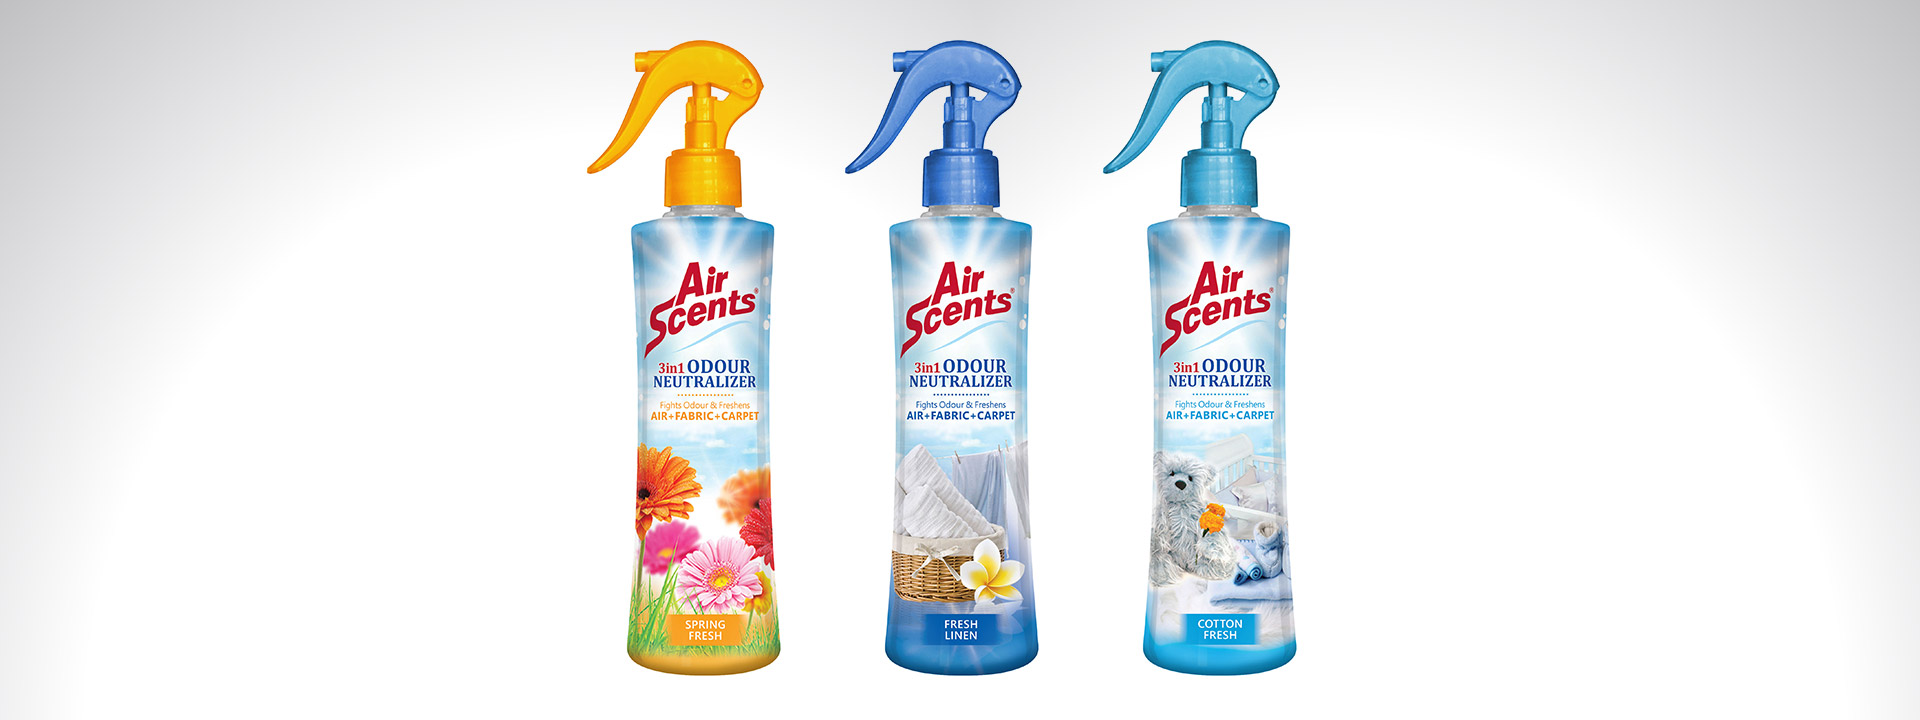 airscents-odour-neutralizer-header